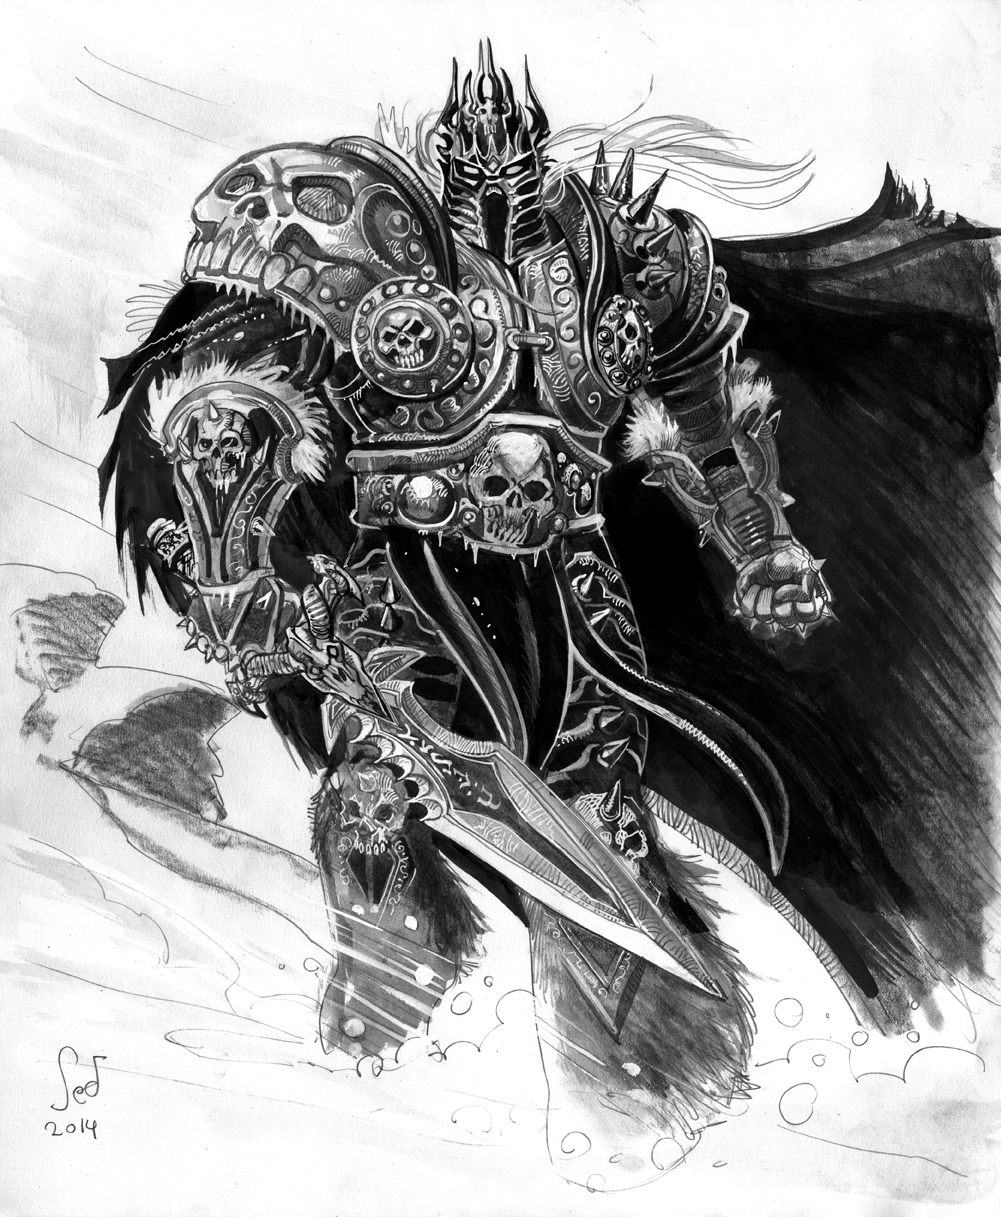 Arthas the Lich King commission by Jebriodo